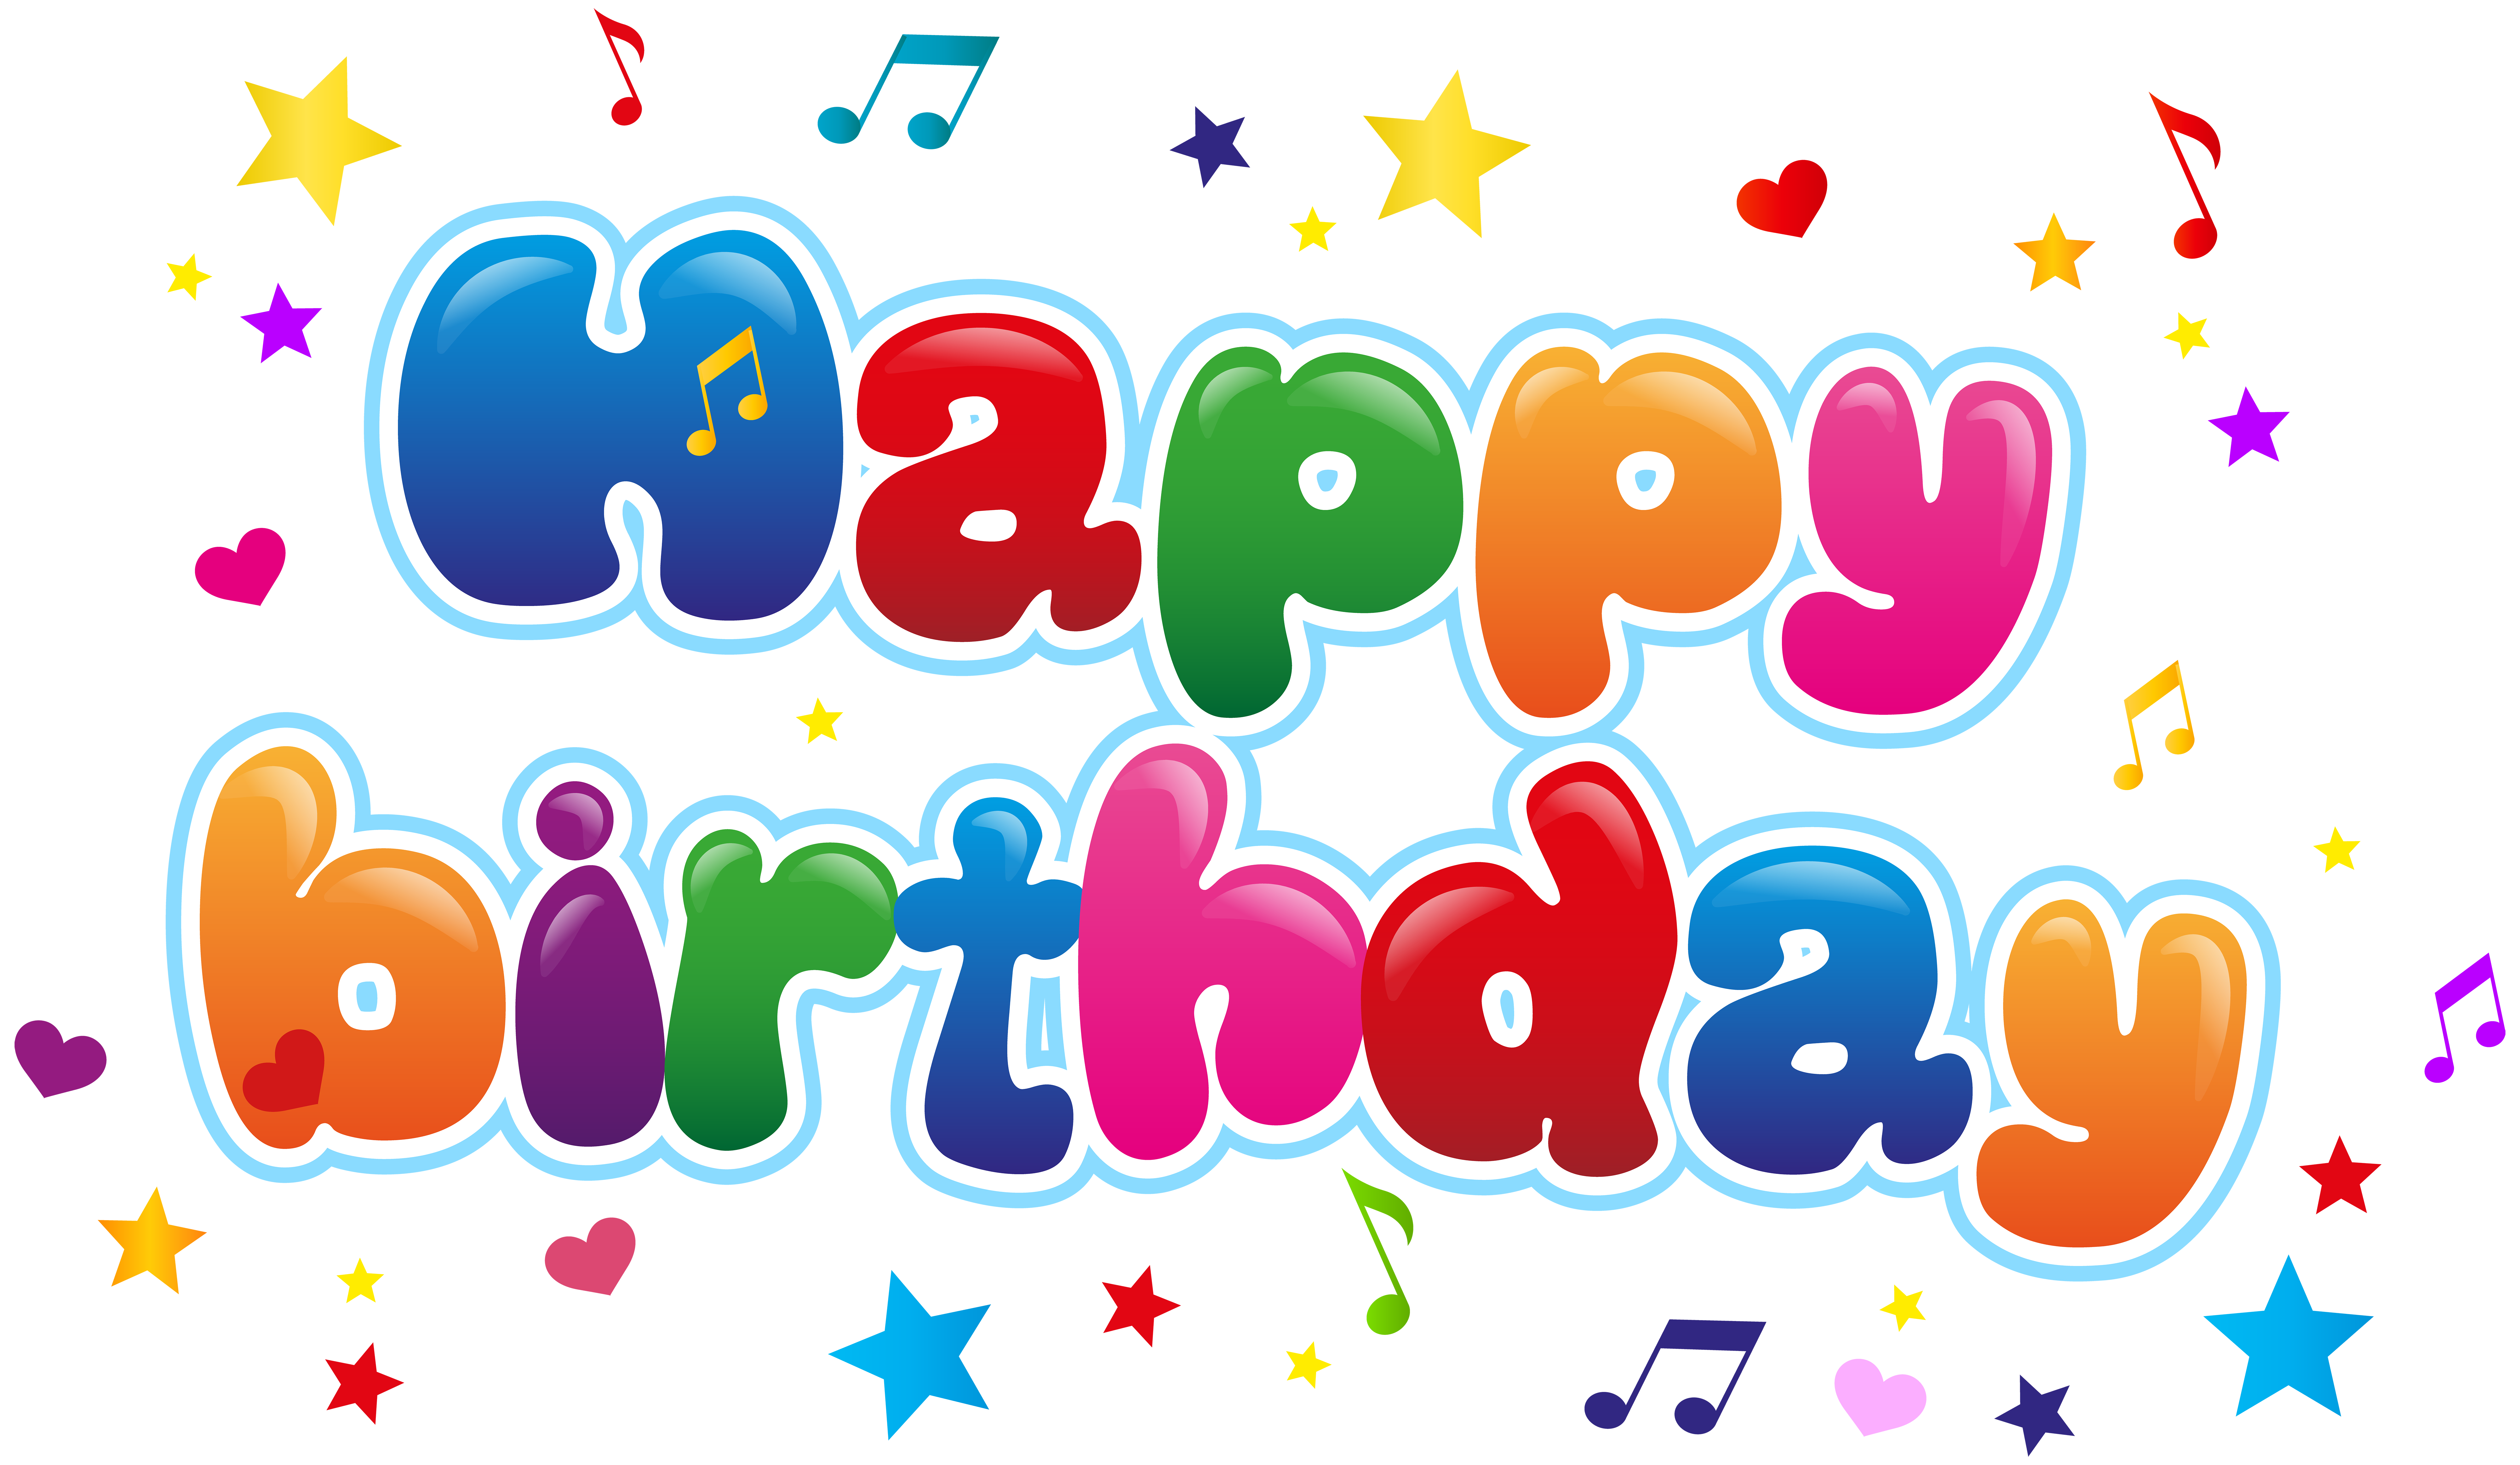 Cute Happy Birthday Png Clip Art Image Gallery Yopriceville High Quality Images And Tr Happy Birthday Png Happy Birthday Wishes Messages Happy Birthday Hd